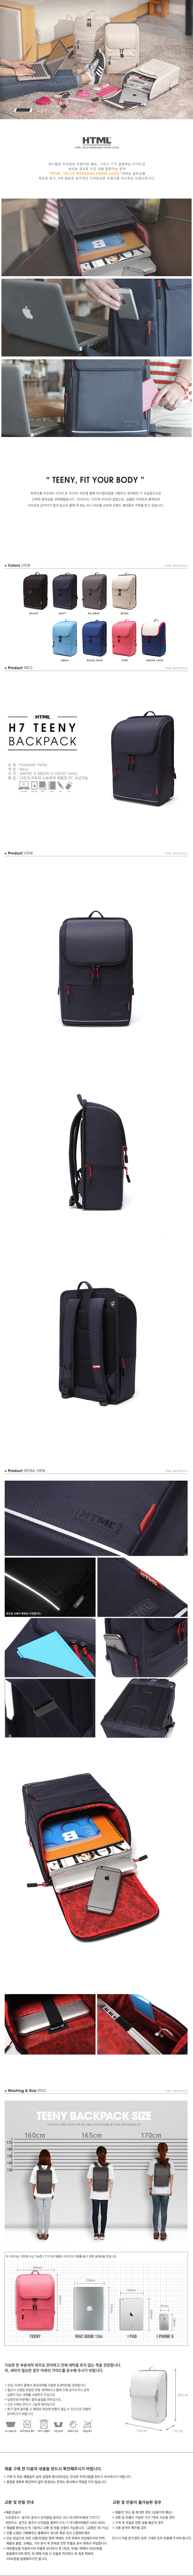 [에이치티엠엘]HTML-NEW H7 WOMAN TEENY Backpack (NAVY) 티니 백팩